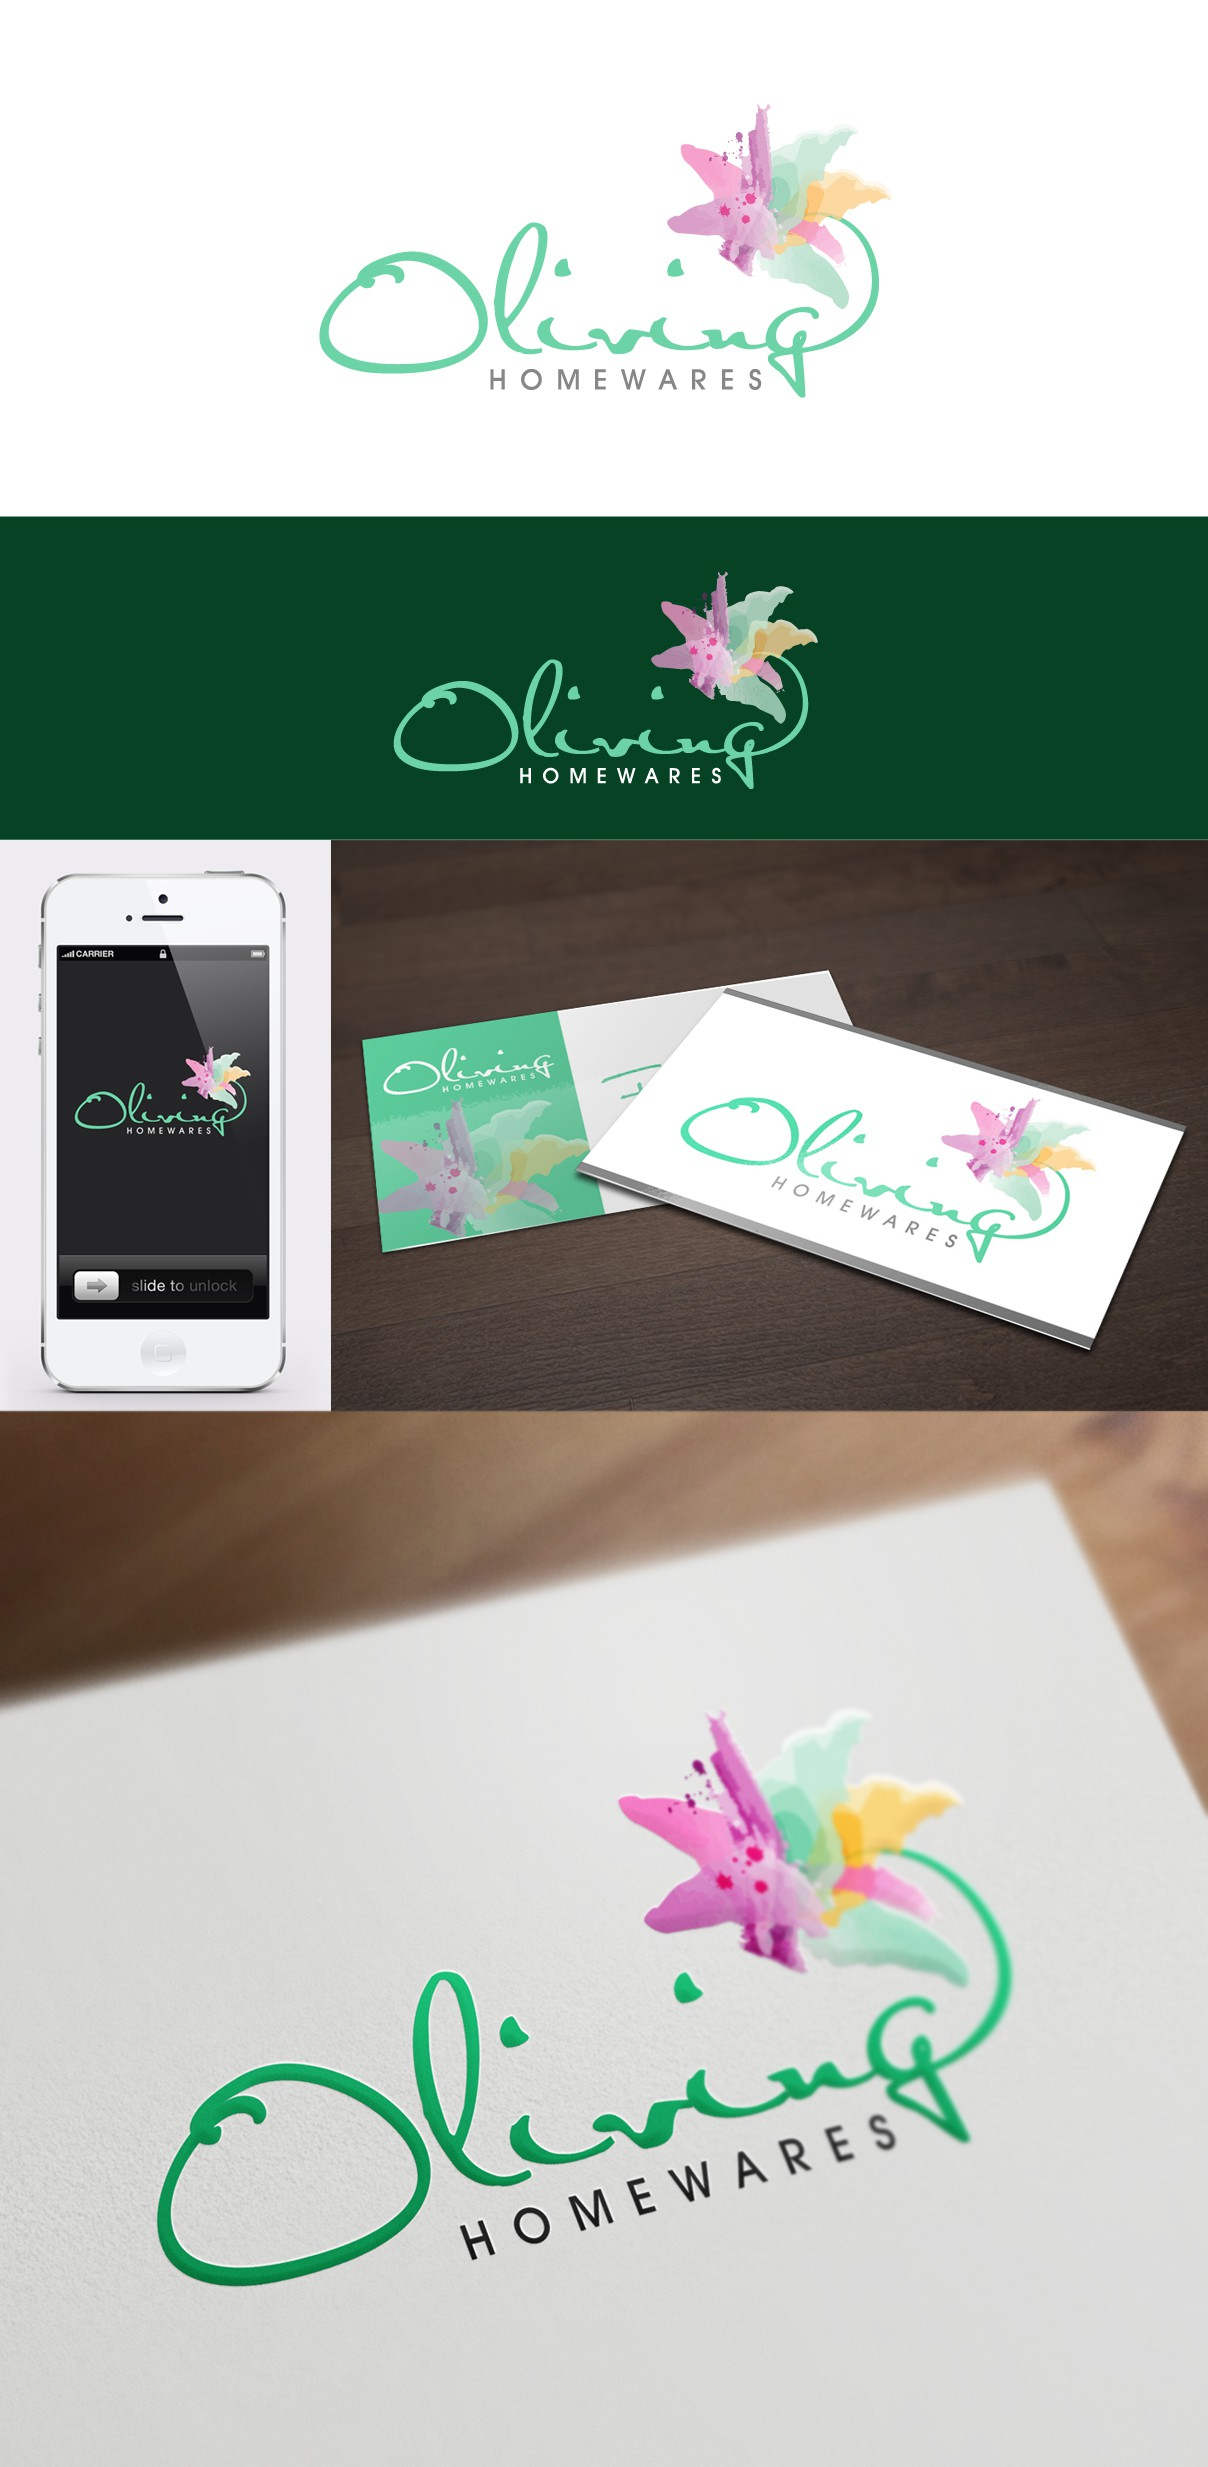 Help Oliving Homewares with a new logo and business card